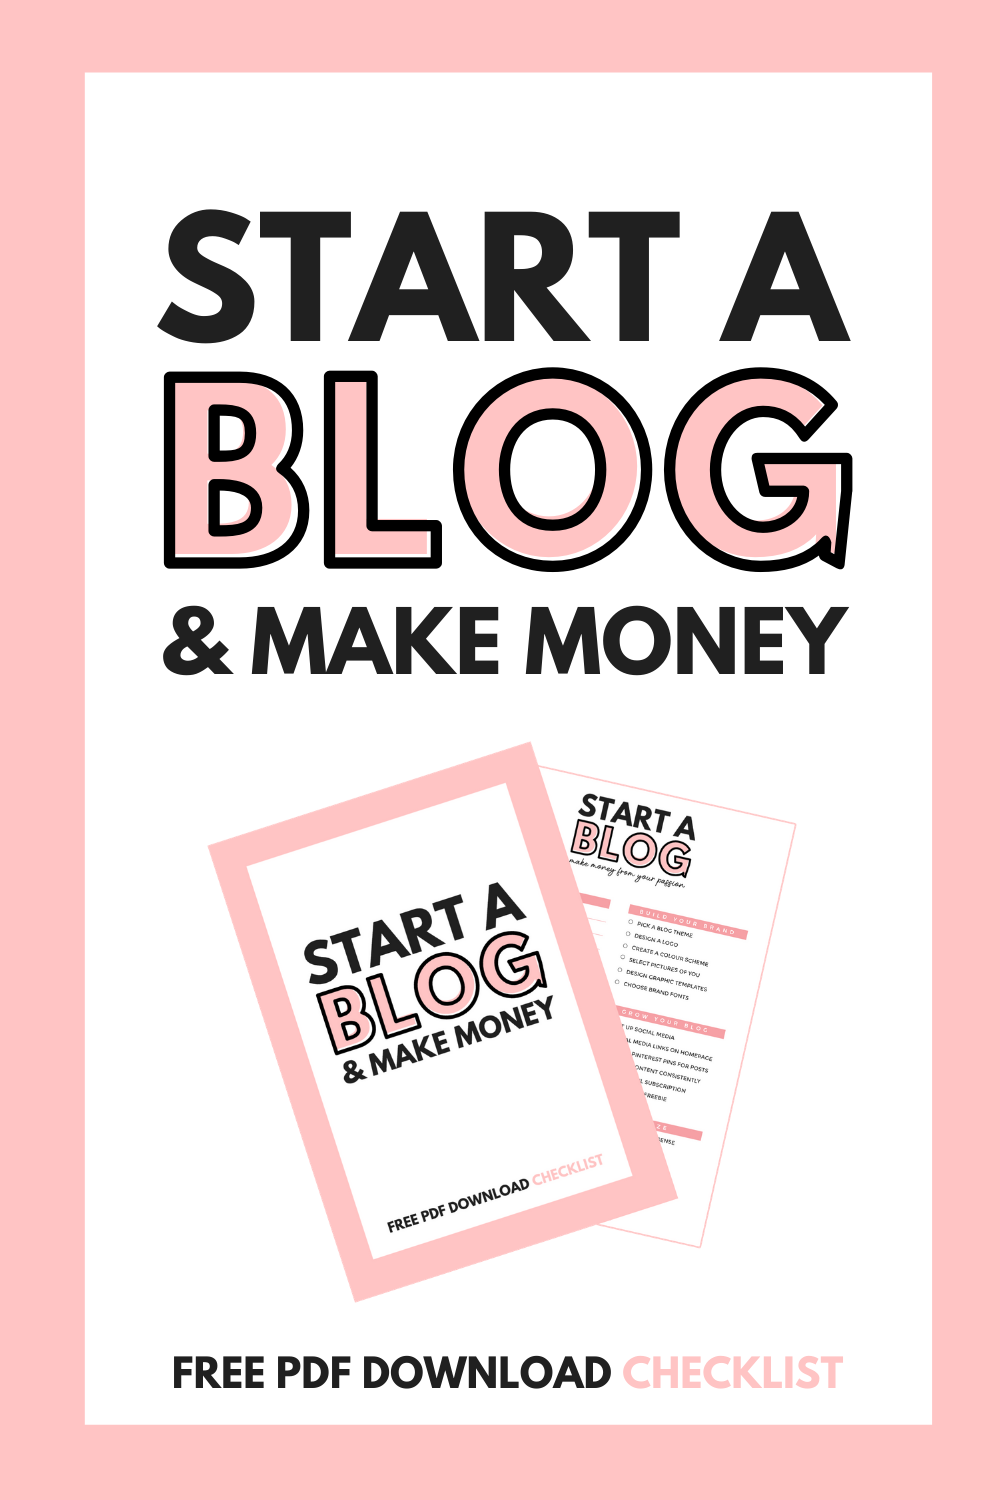 START A BLOG & MAKE MONEY _ FREE PDF DOWNLOAD _ CHECKLIST